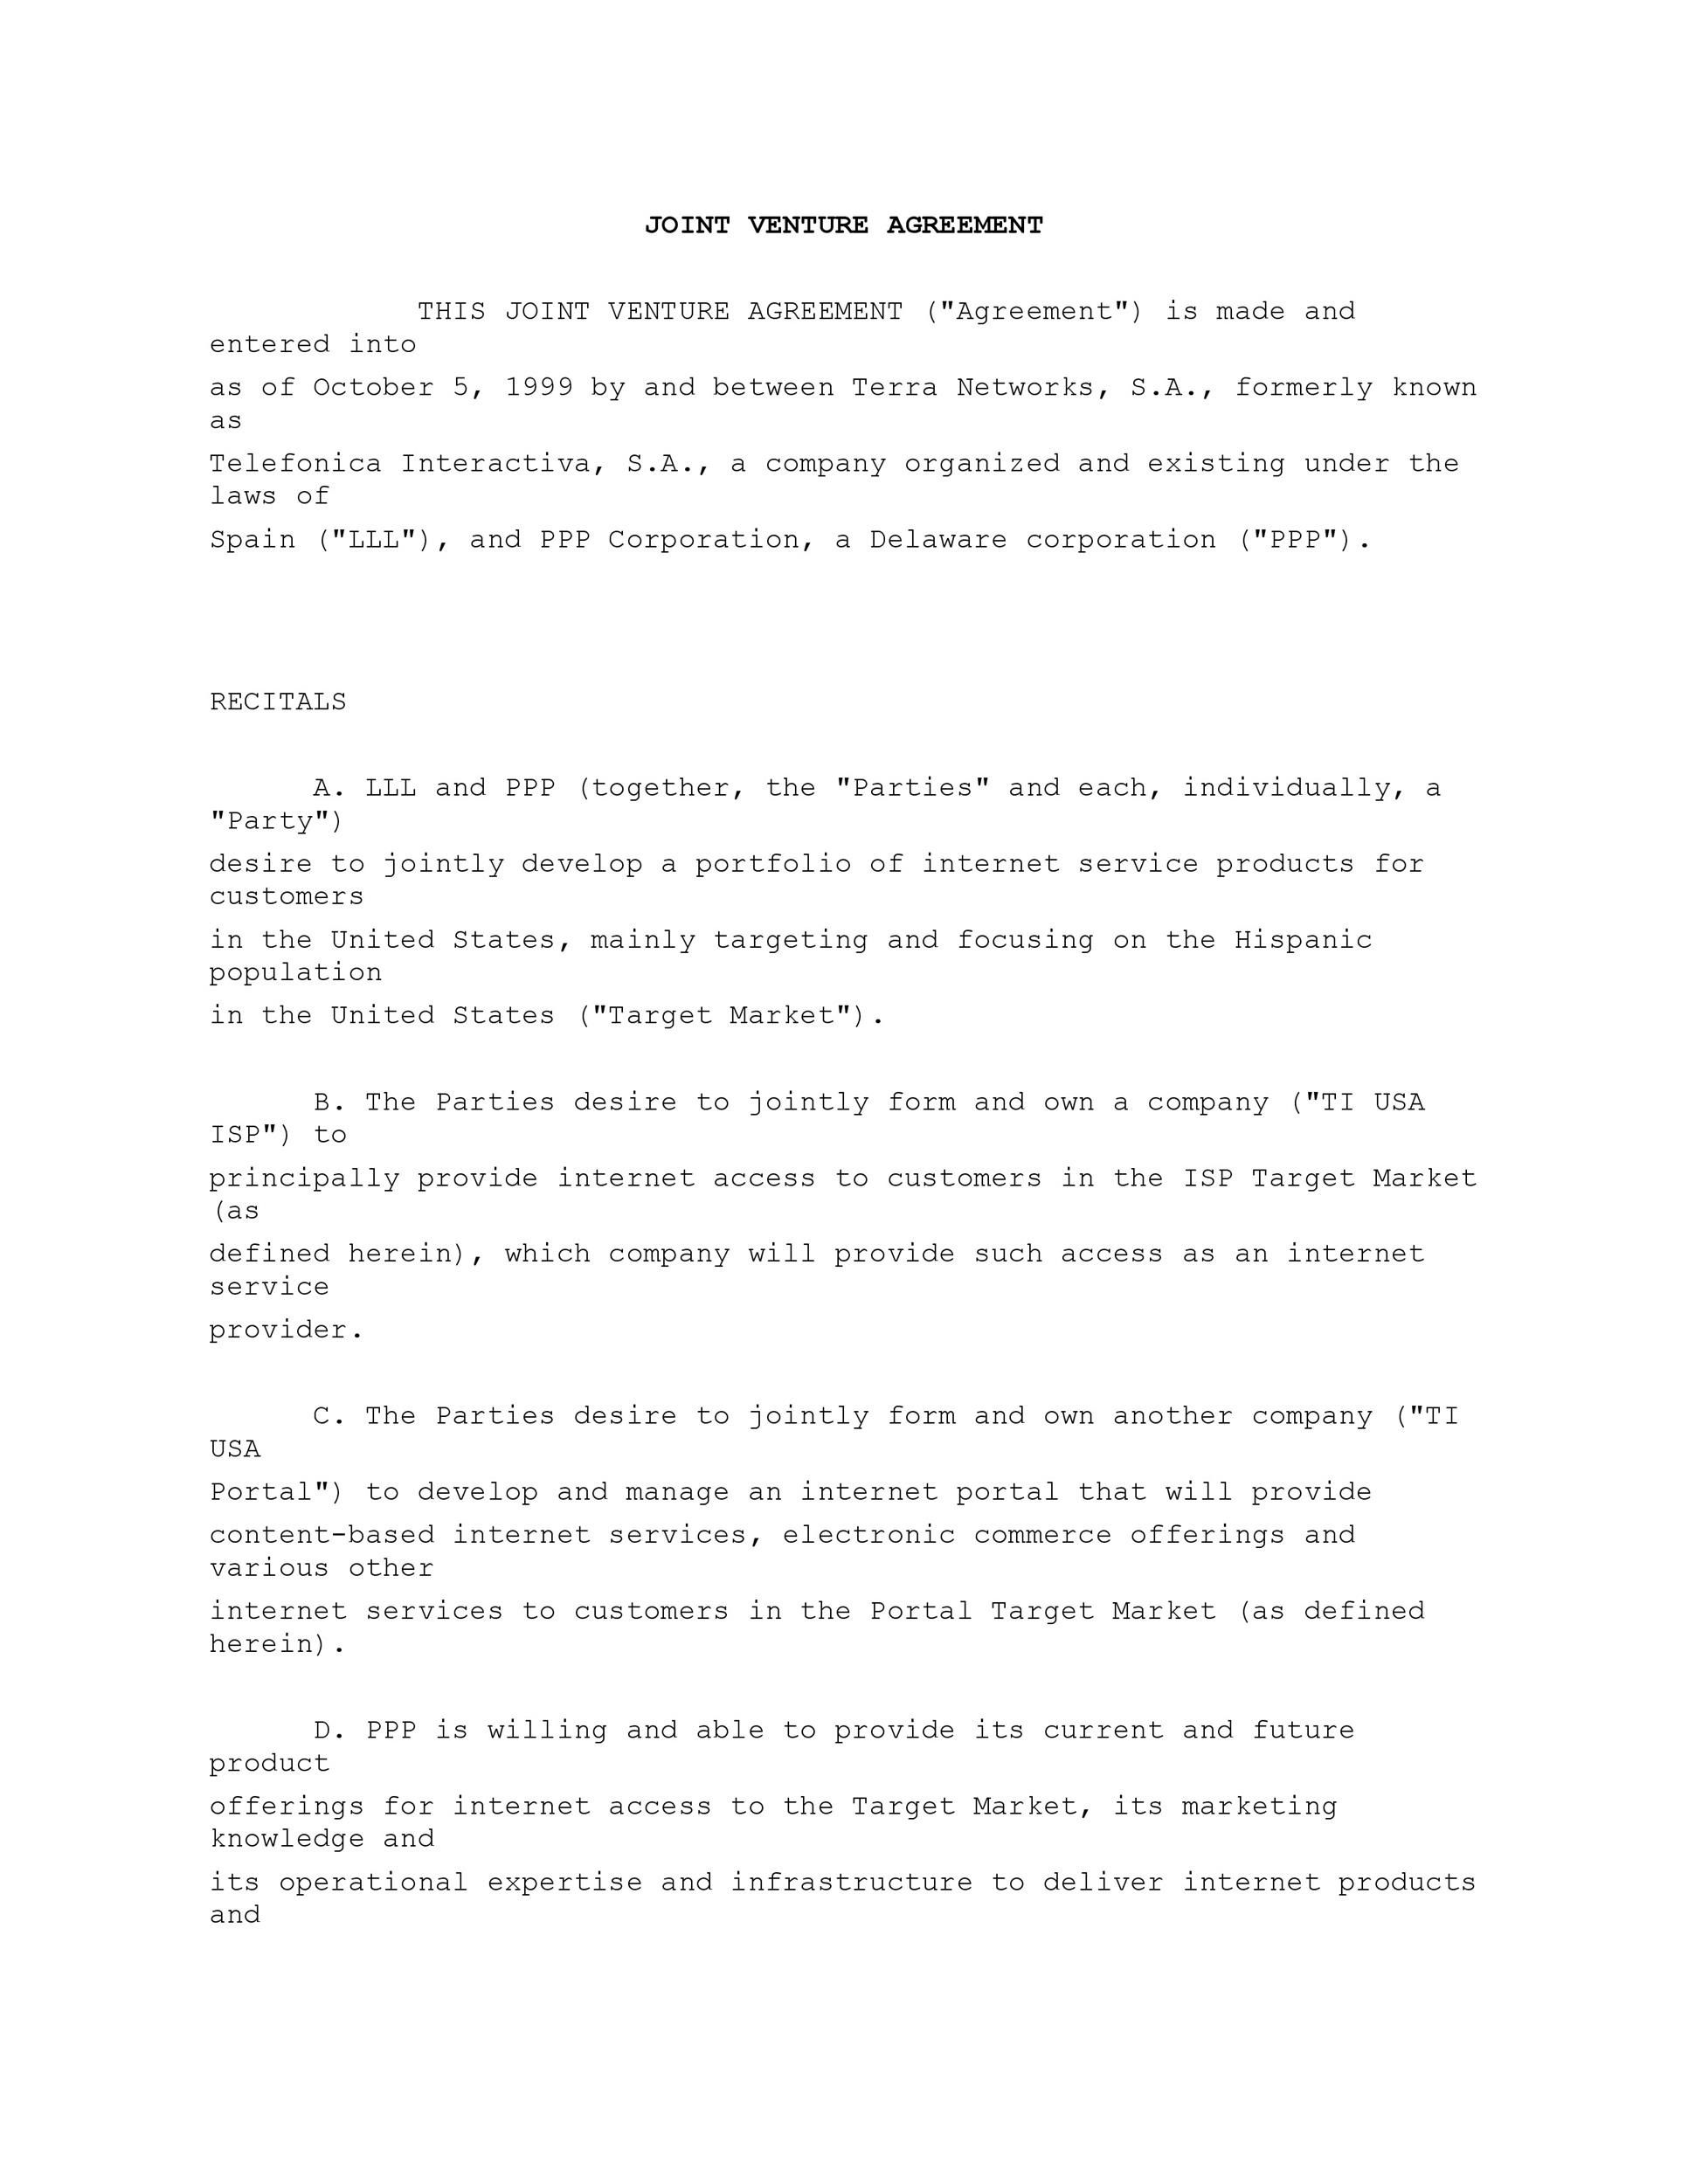 007 Unique Joint Venture Agreement Template Free South Africa High Resolution  DownloadFull